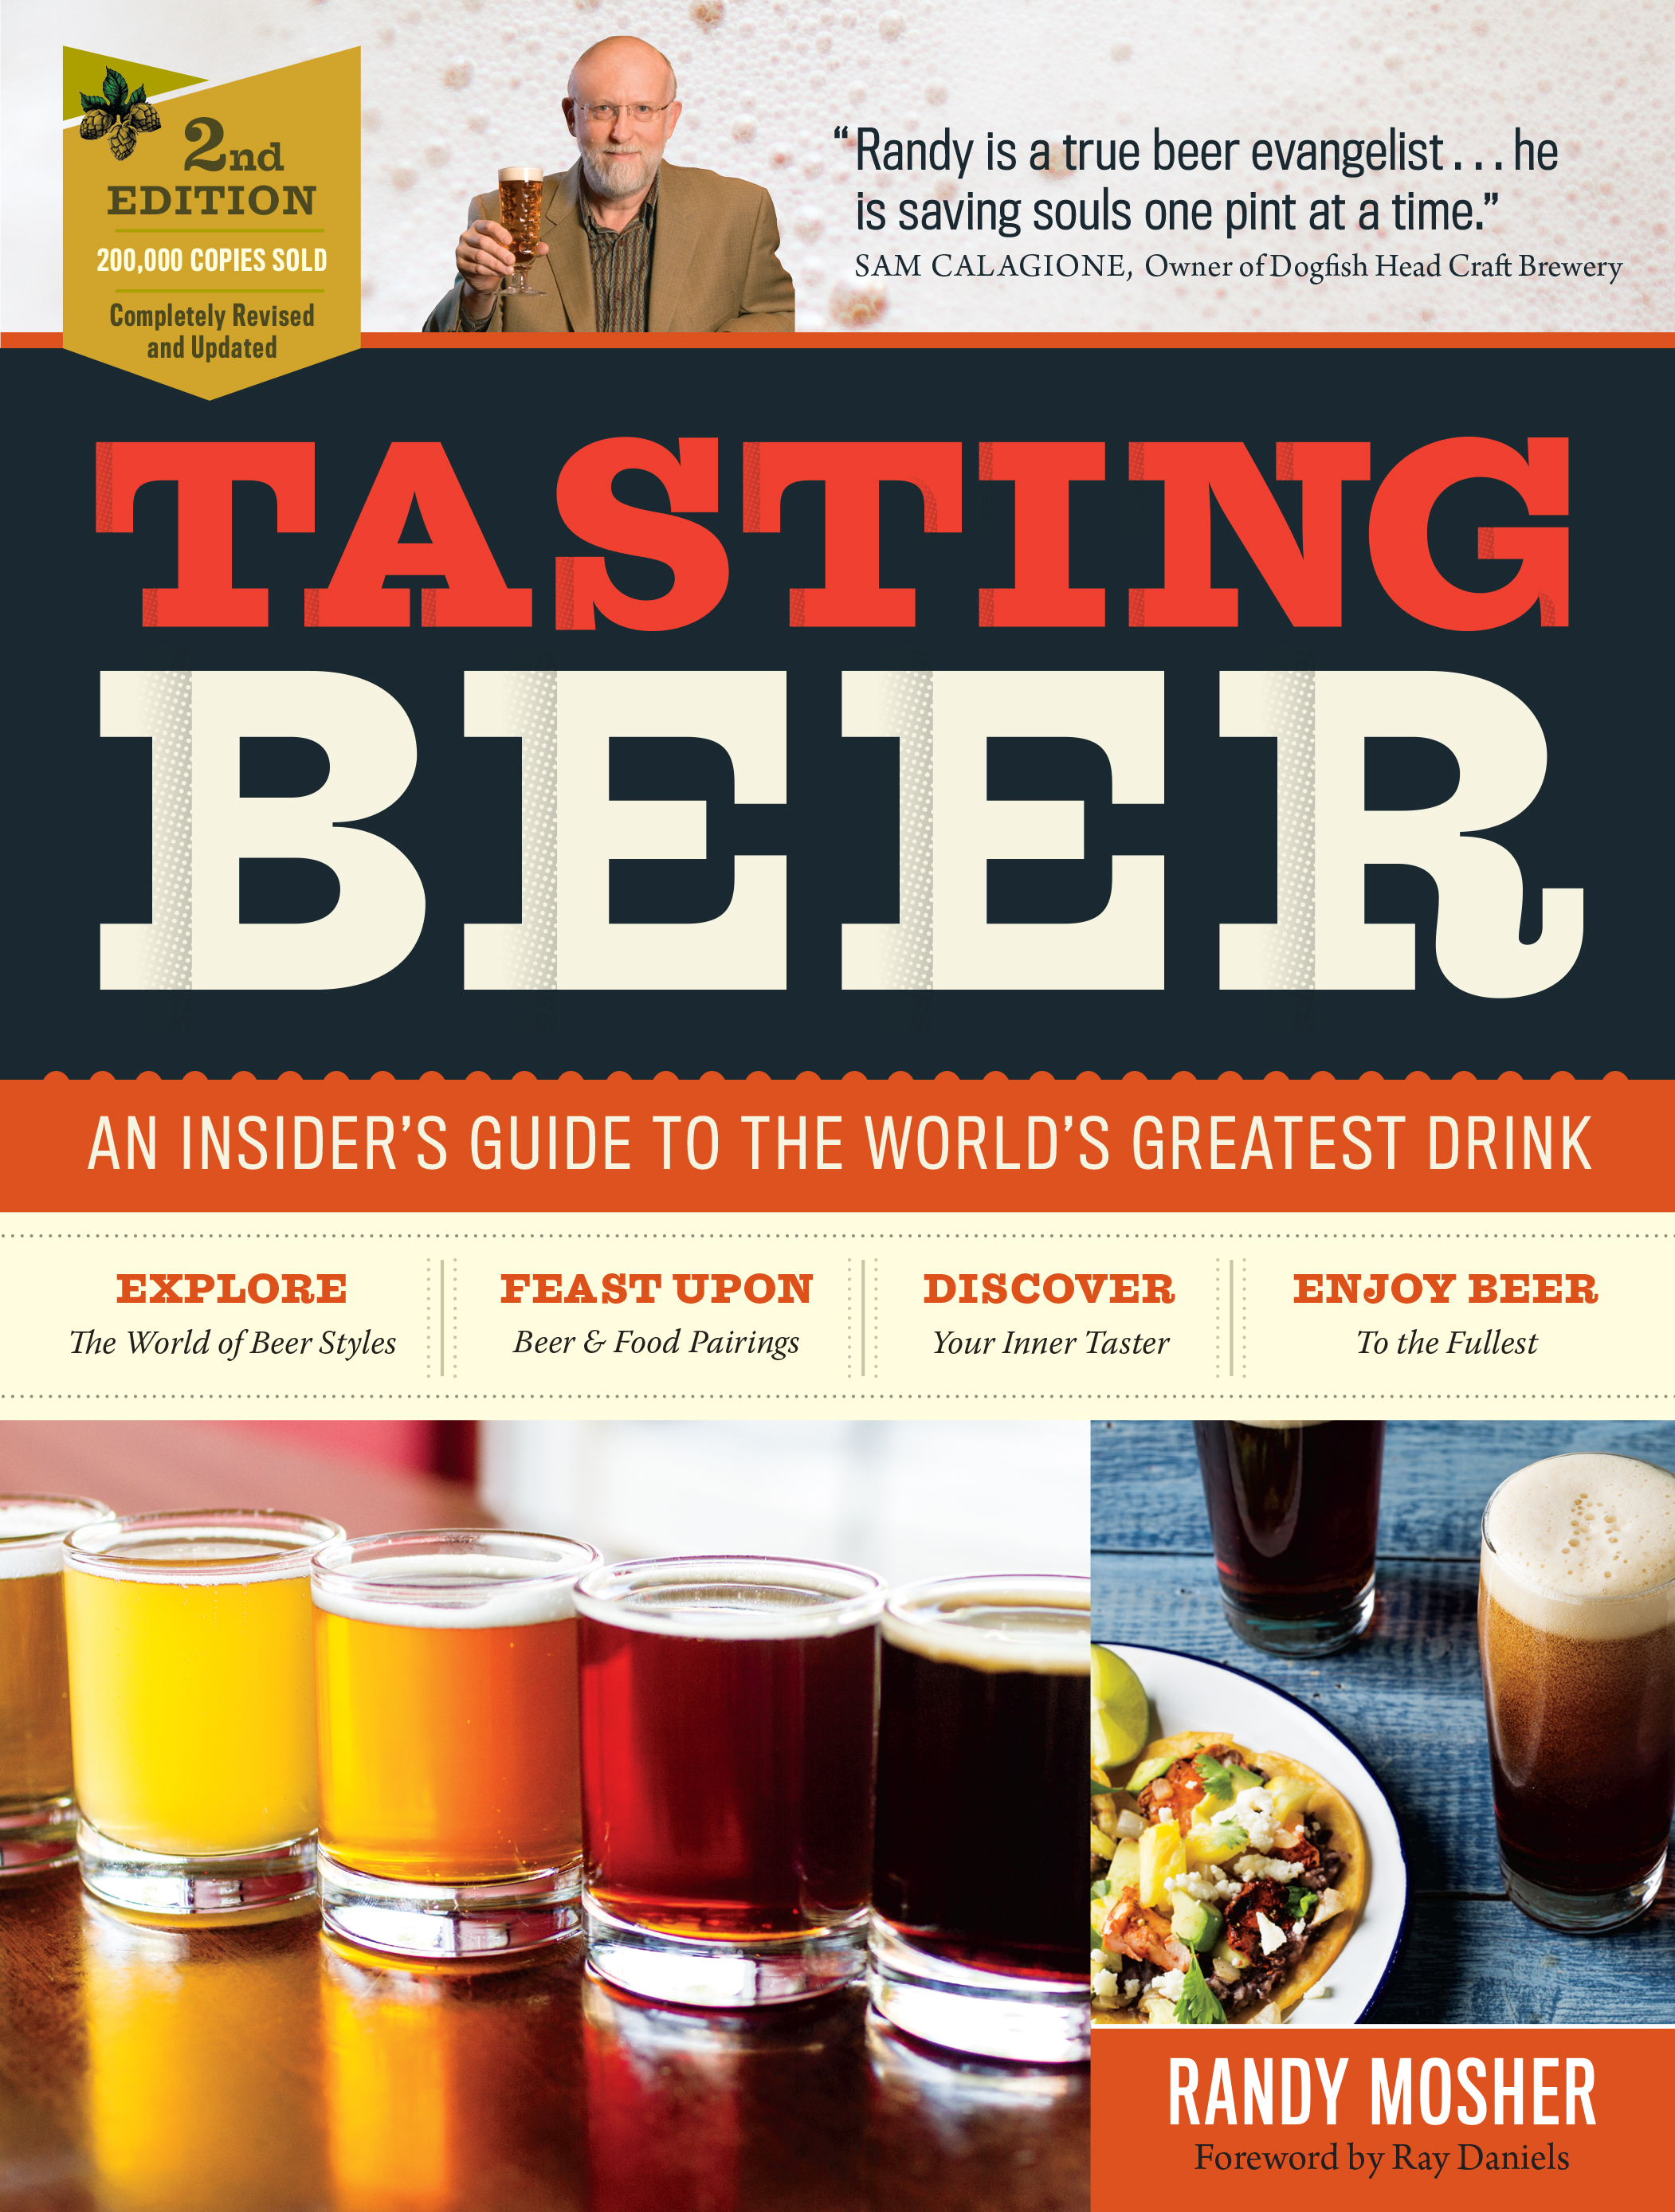 Tasting Beer, 2nd Edition An Insider's Guide to the World's Greatest Drink - Randy Mosher